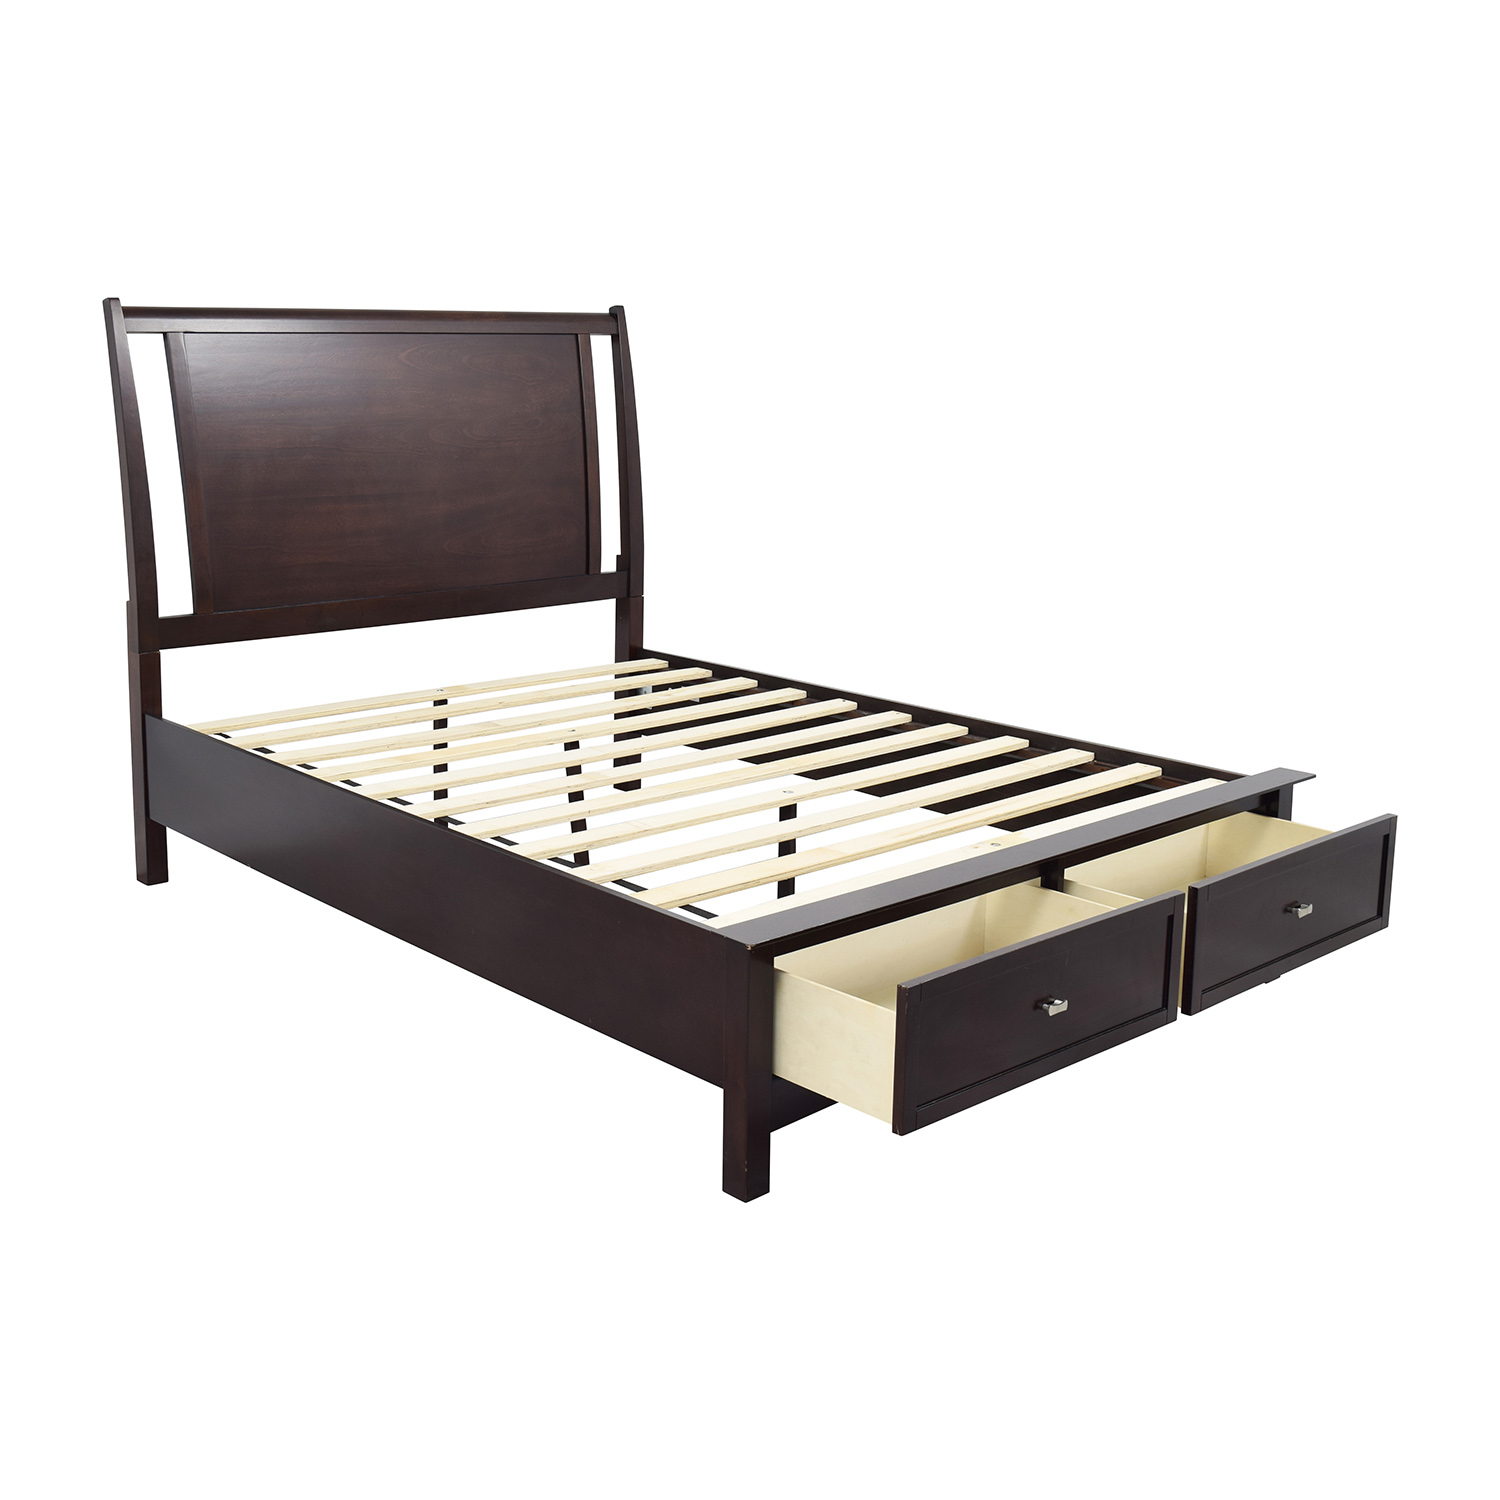 Bobs Furniture Bobs Furniture Wooden Queen Size Storage Bed price